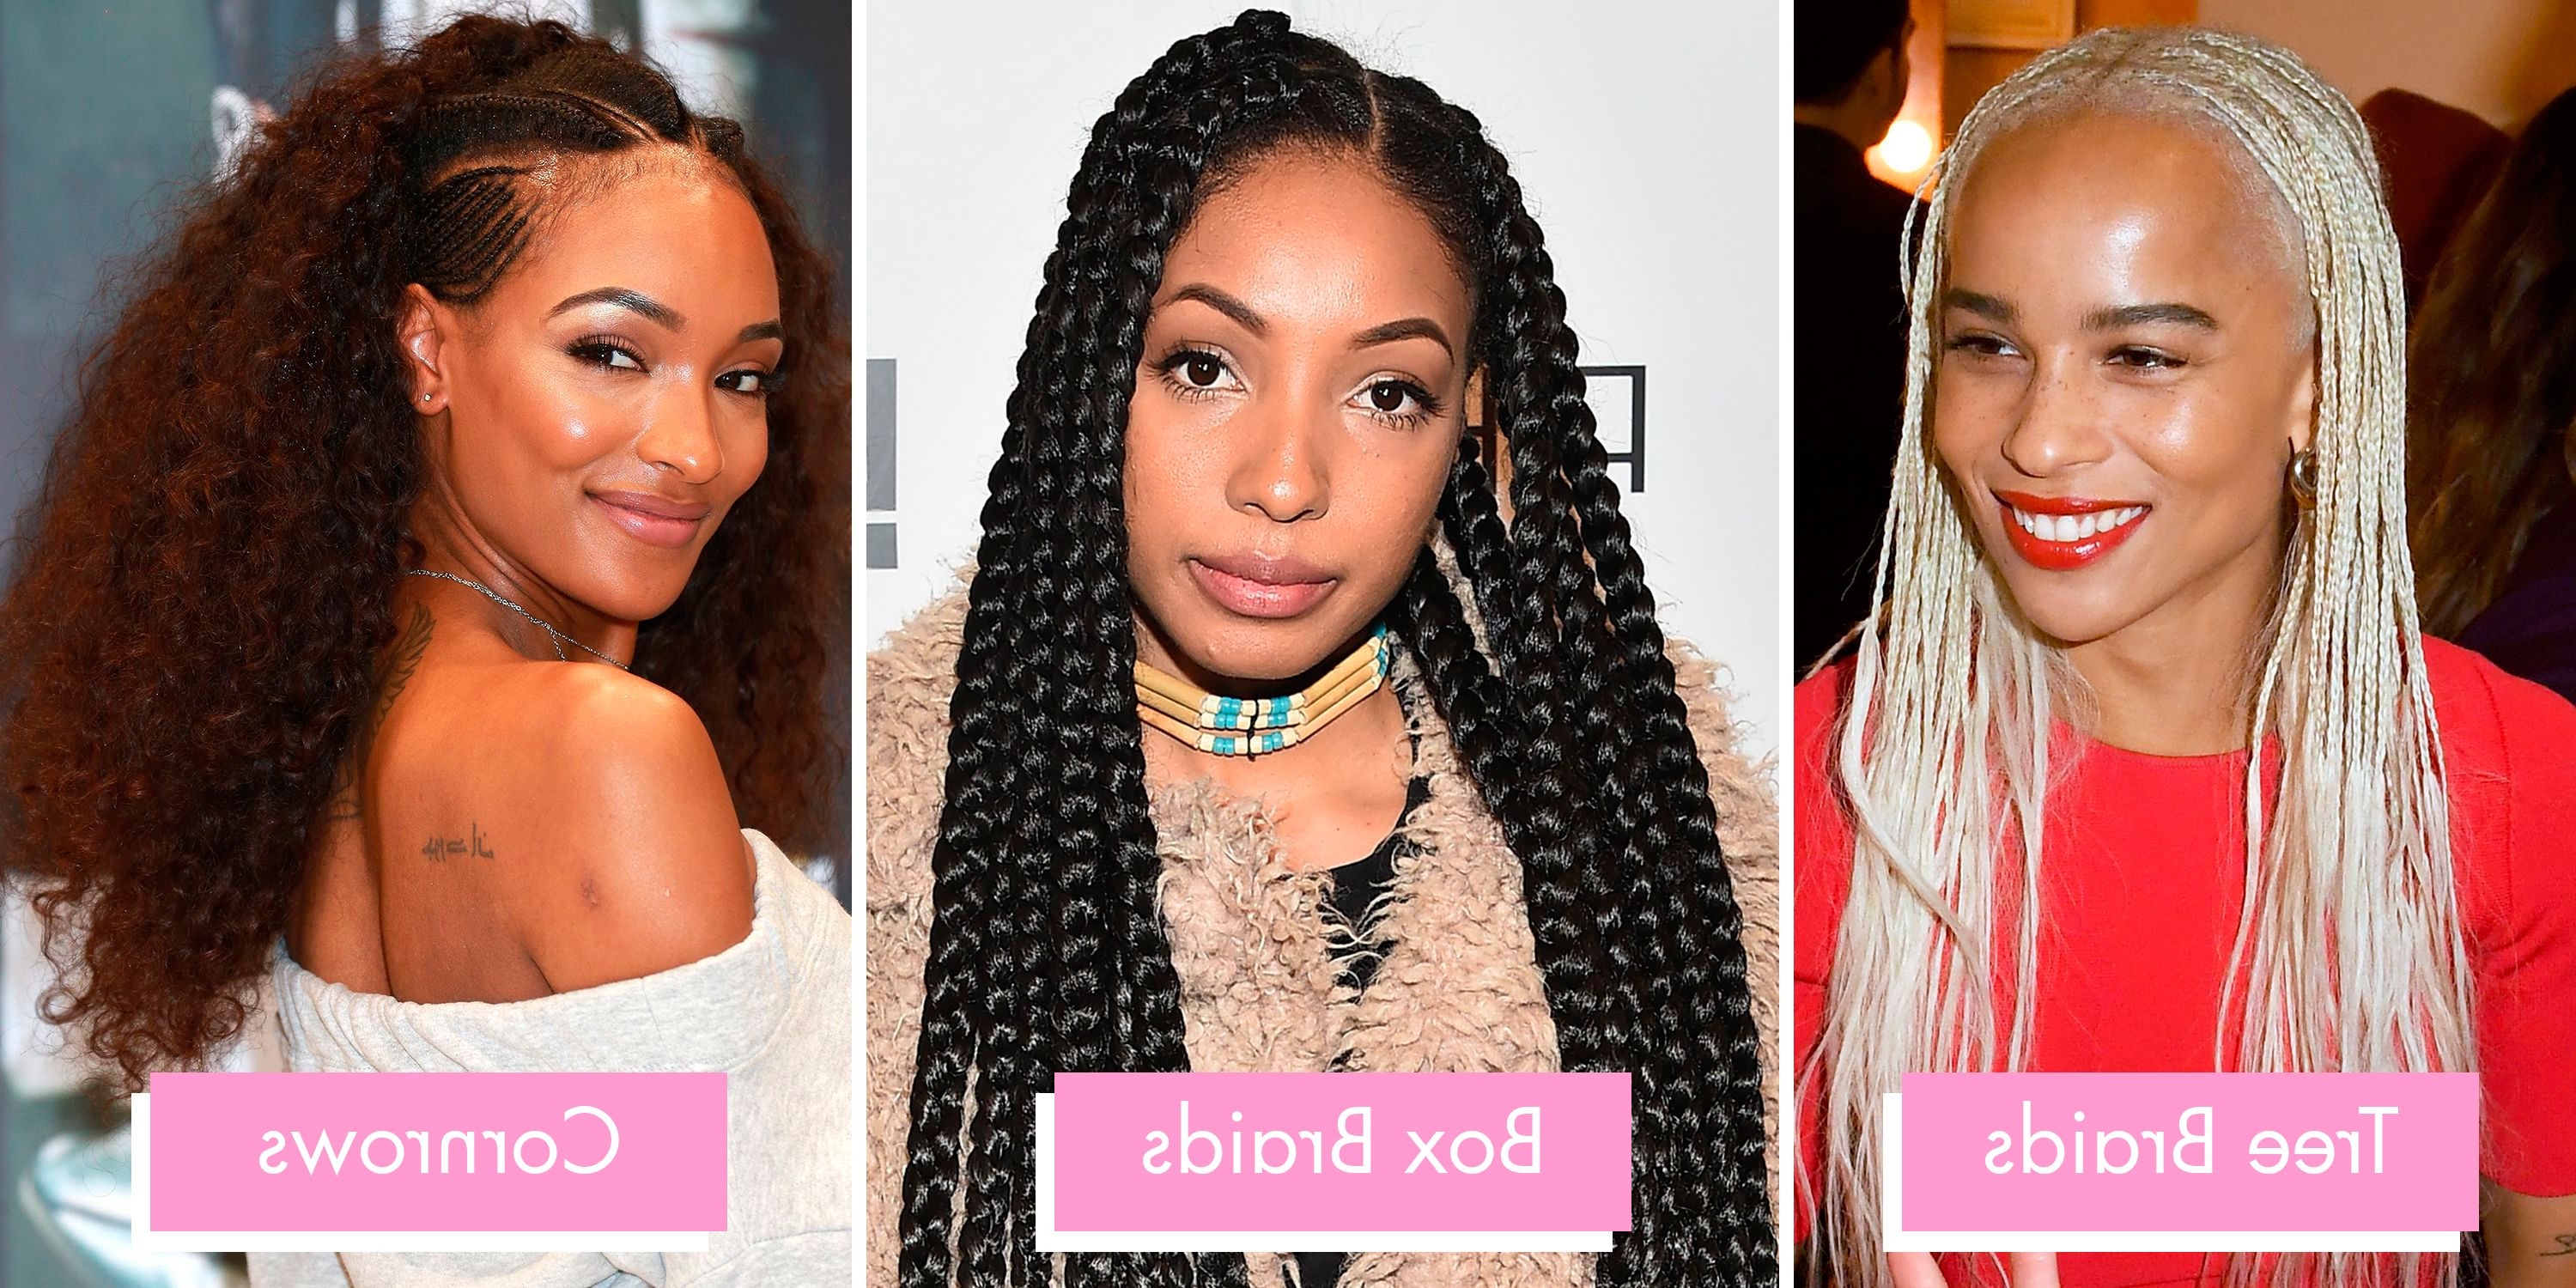 2020 Two Tone Tiny Bob Braid Hairstyles For Braids And Twists 2019 – 14 Hairstyles From Crochet And Box (View 13 of 20)